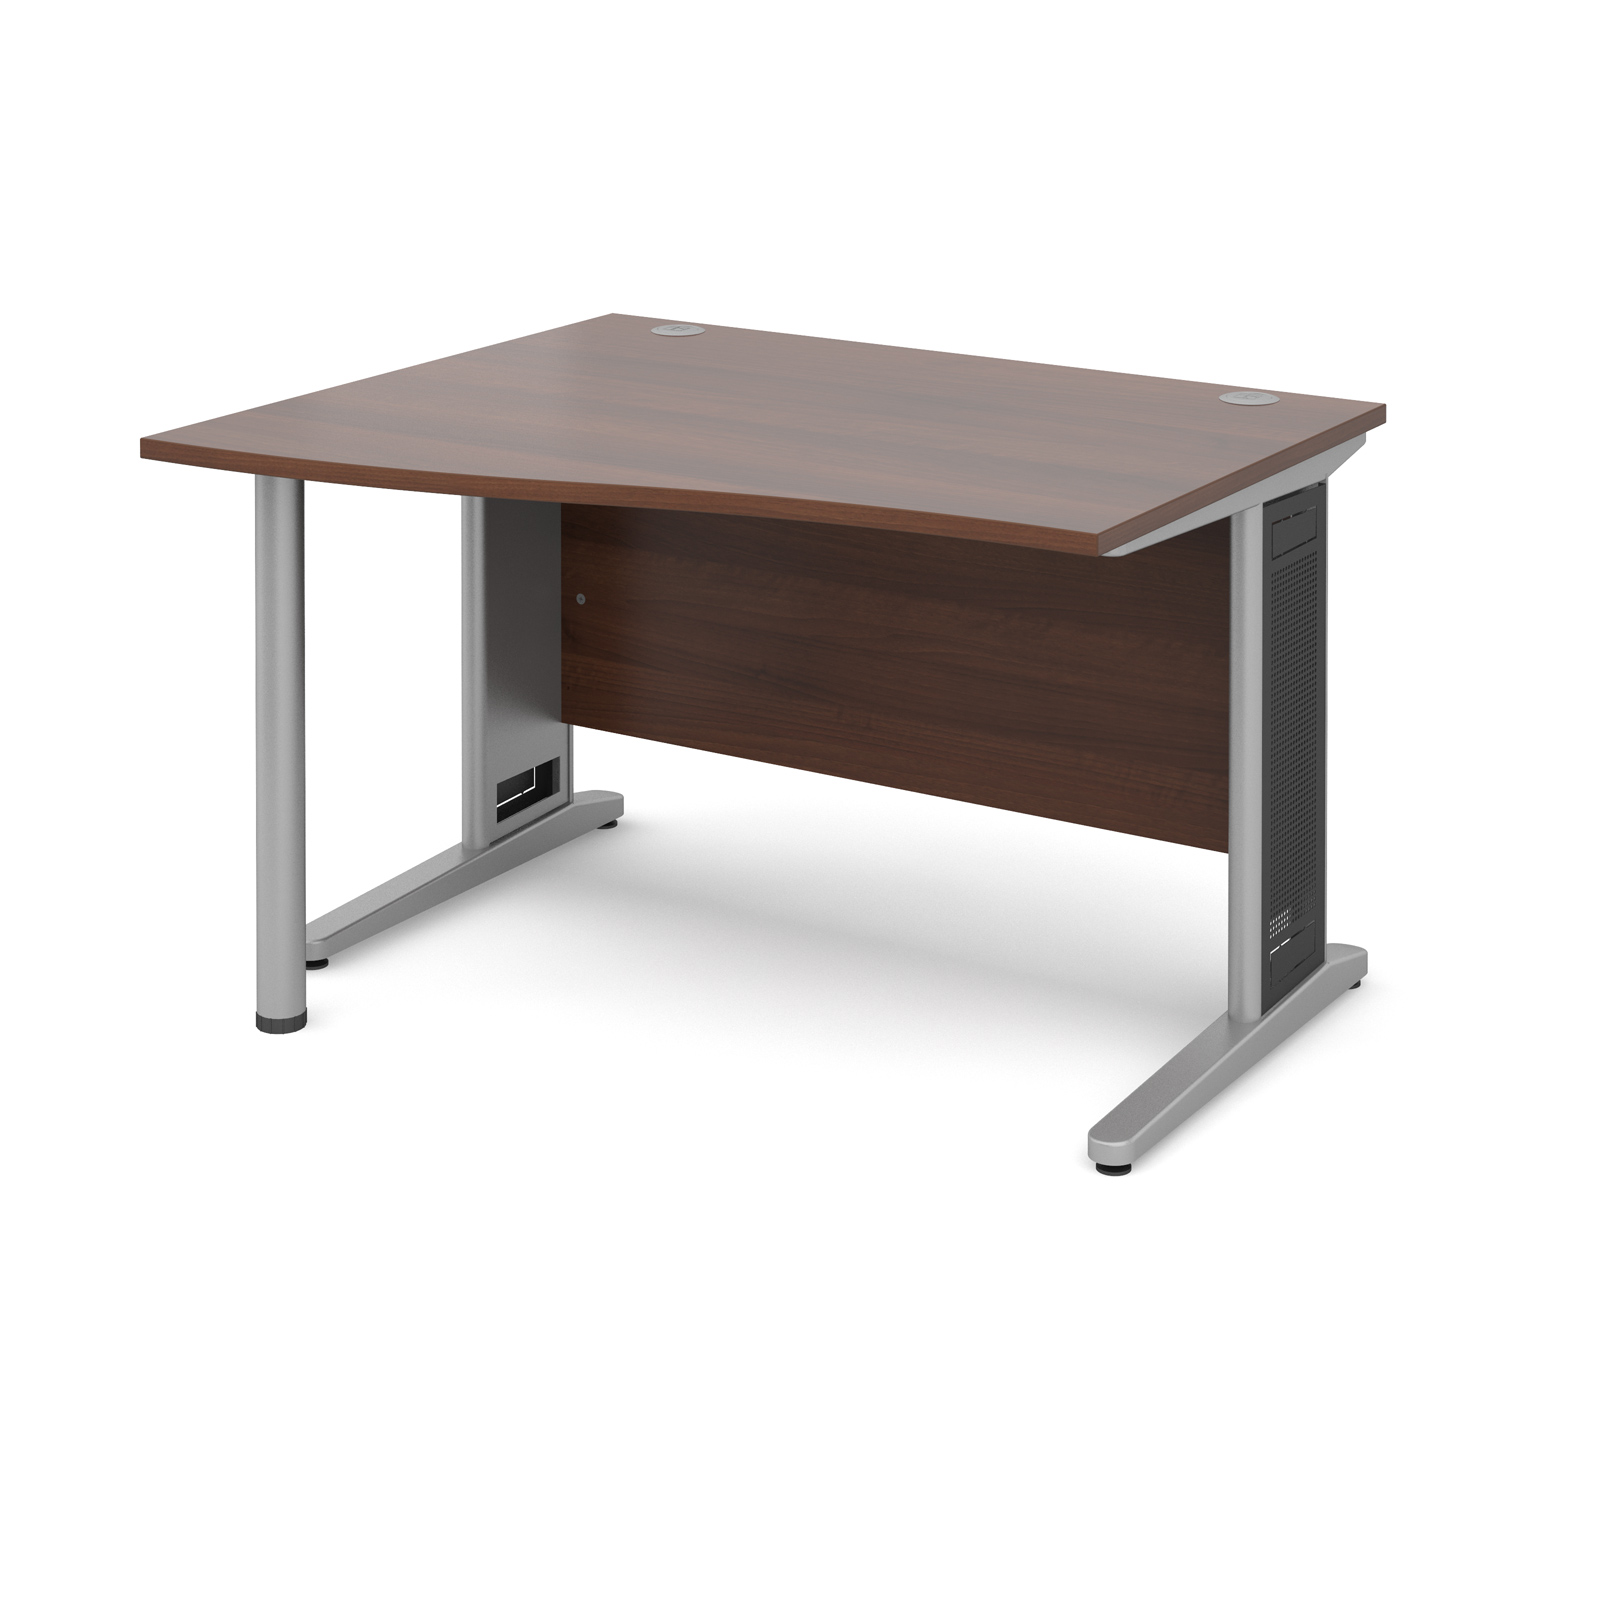 Largo left hand wave desk 1200mm - silver cantilever frame with removable grill, walnut top